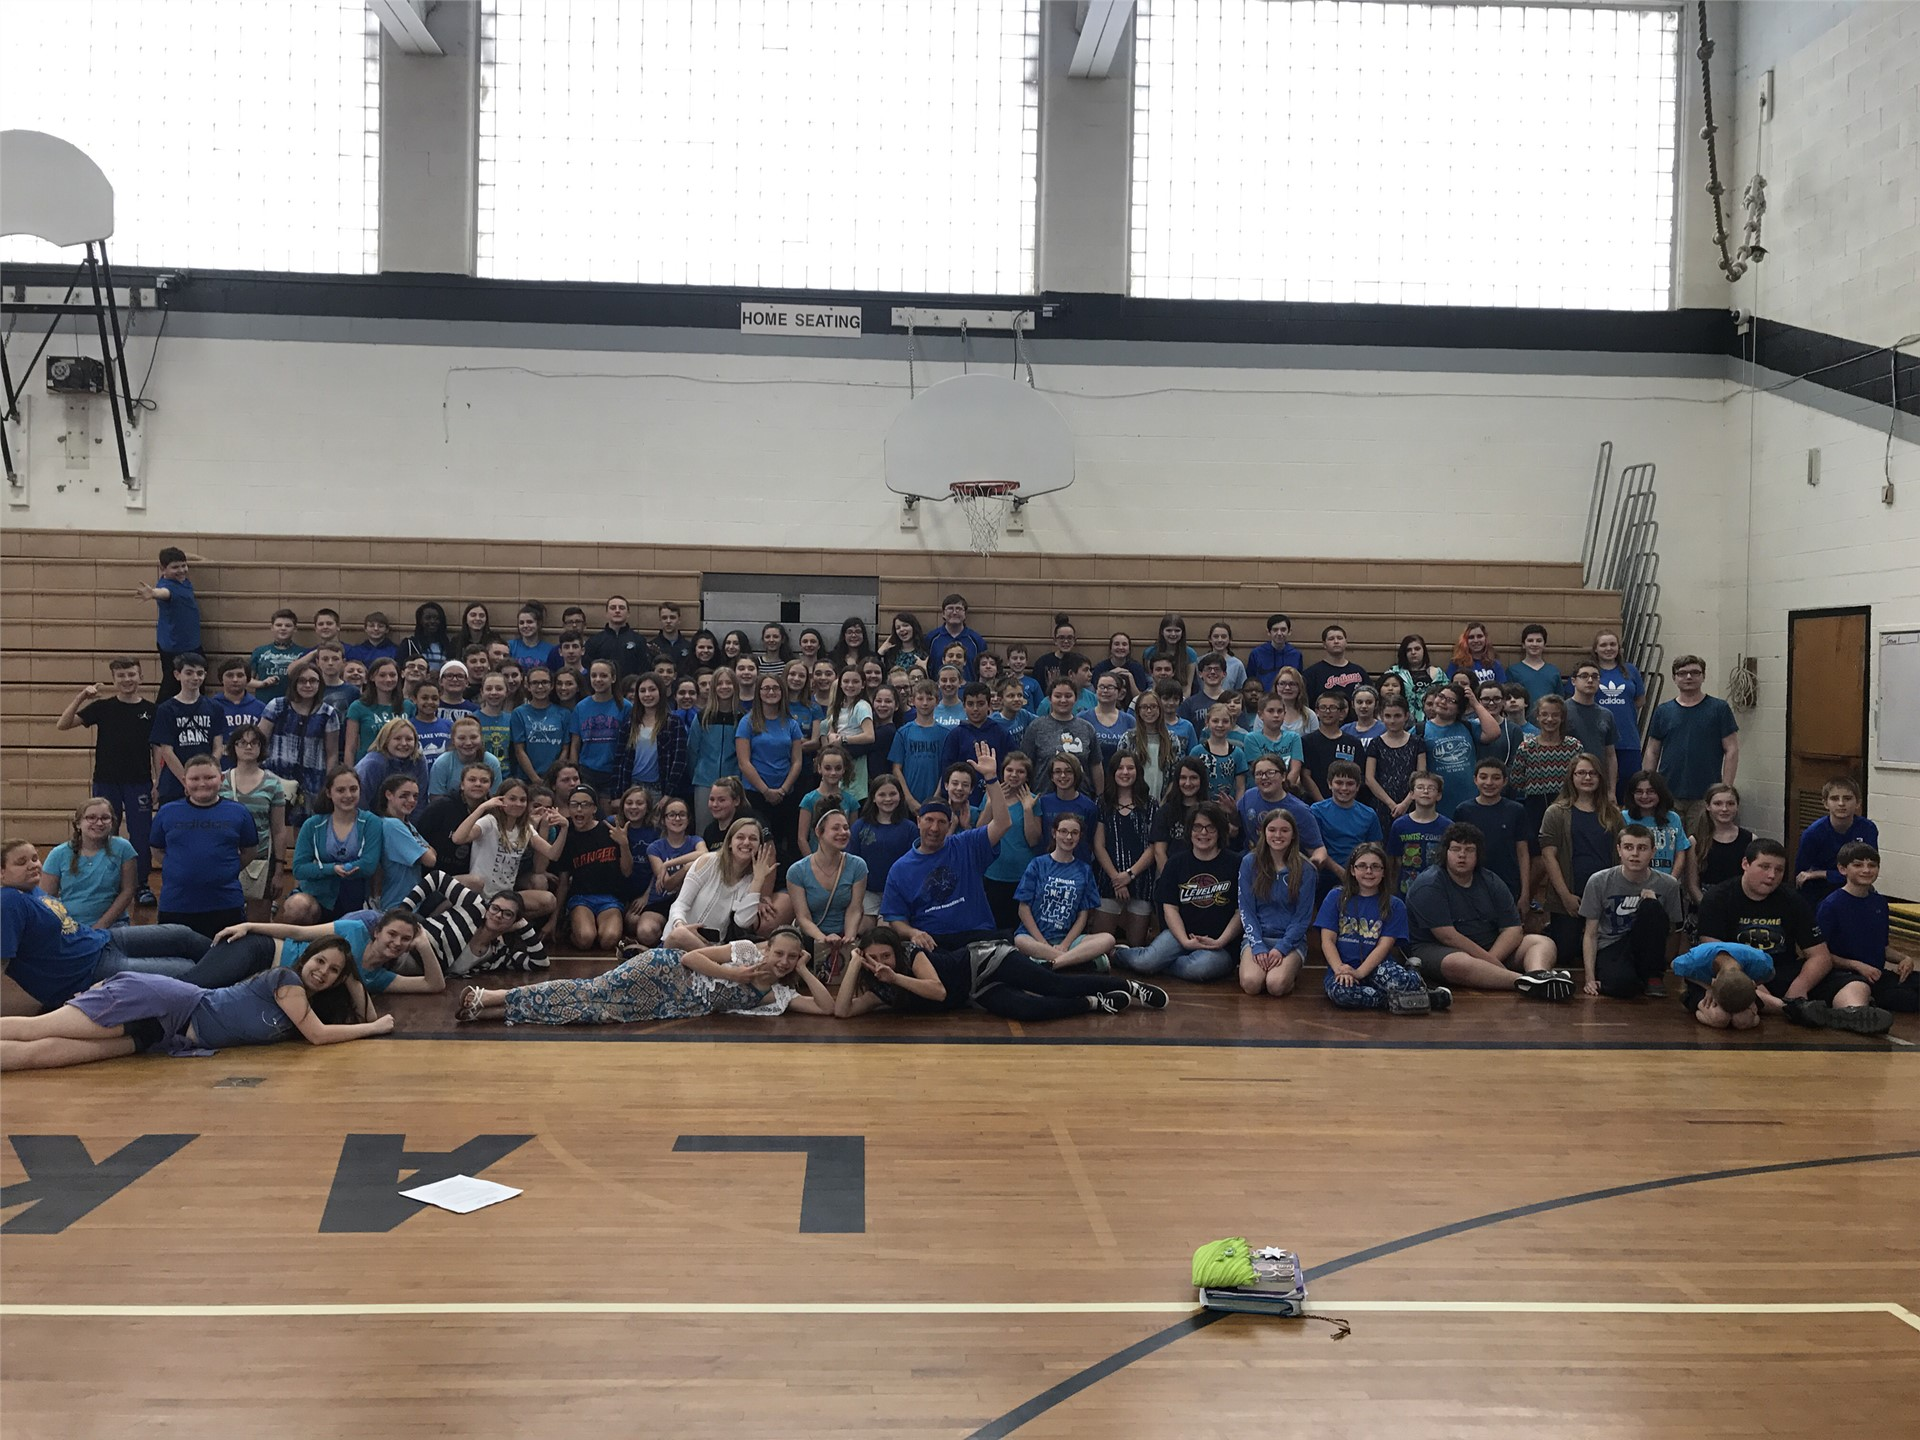 Wearing Blue for Autism AwareNESS